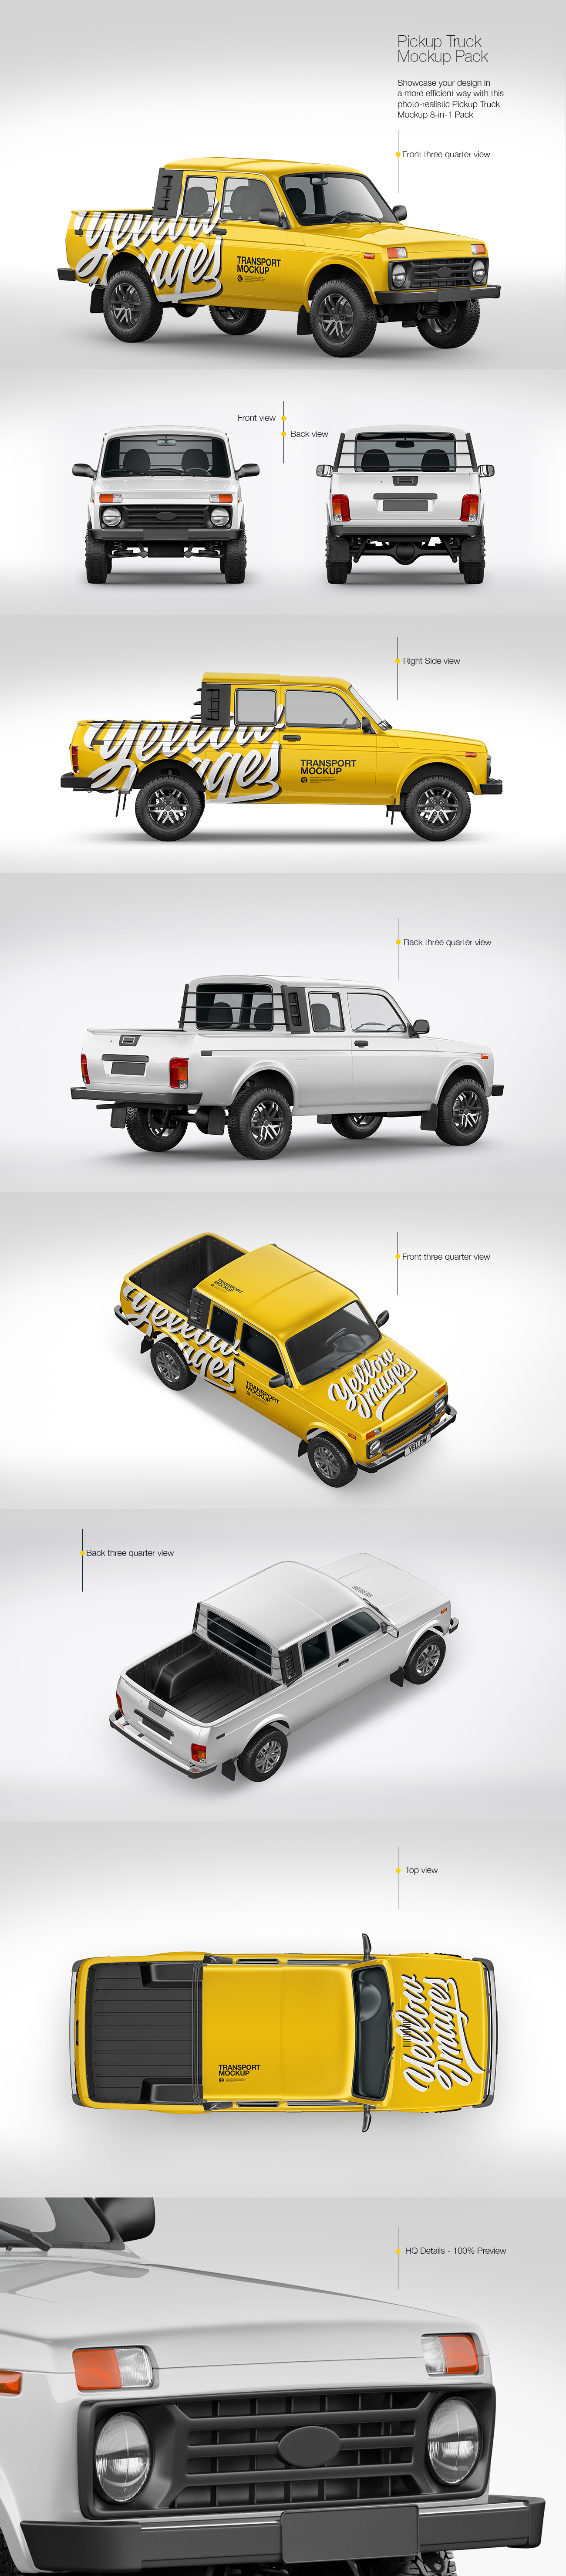 Download Pickup Truck Mockup Pack In Handpicked Sets Of Vehicles On Yellow Images Creative Store PSD Mockup Templates